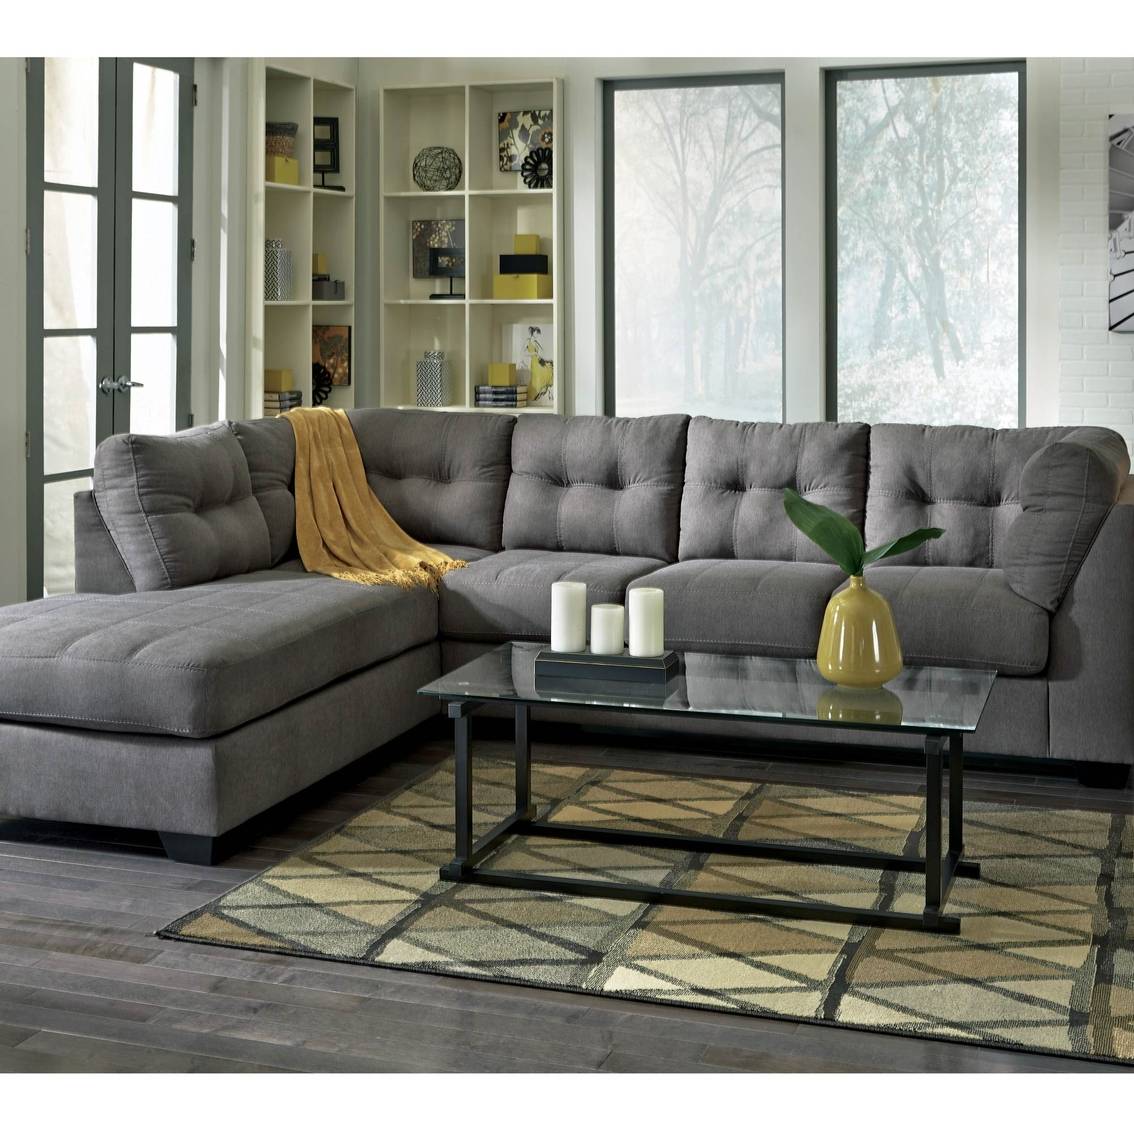 Ashley maier 2 pc sectional sofa with left corner chaise for Ashley chaise sectional